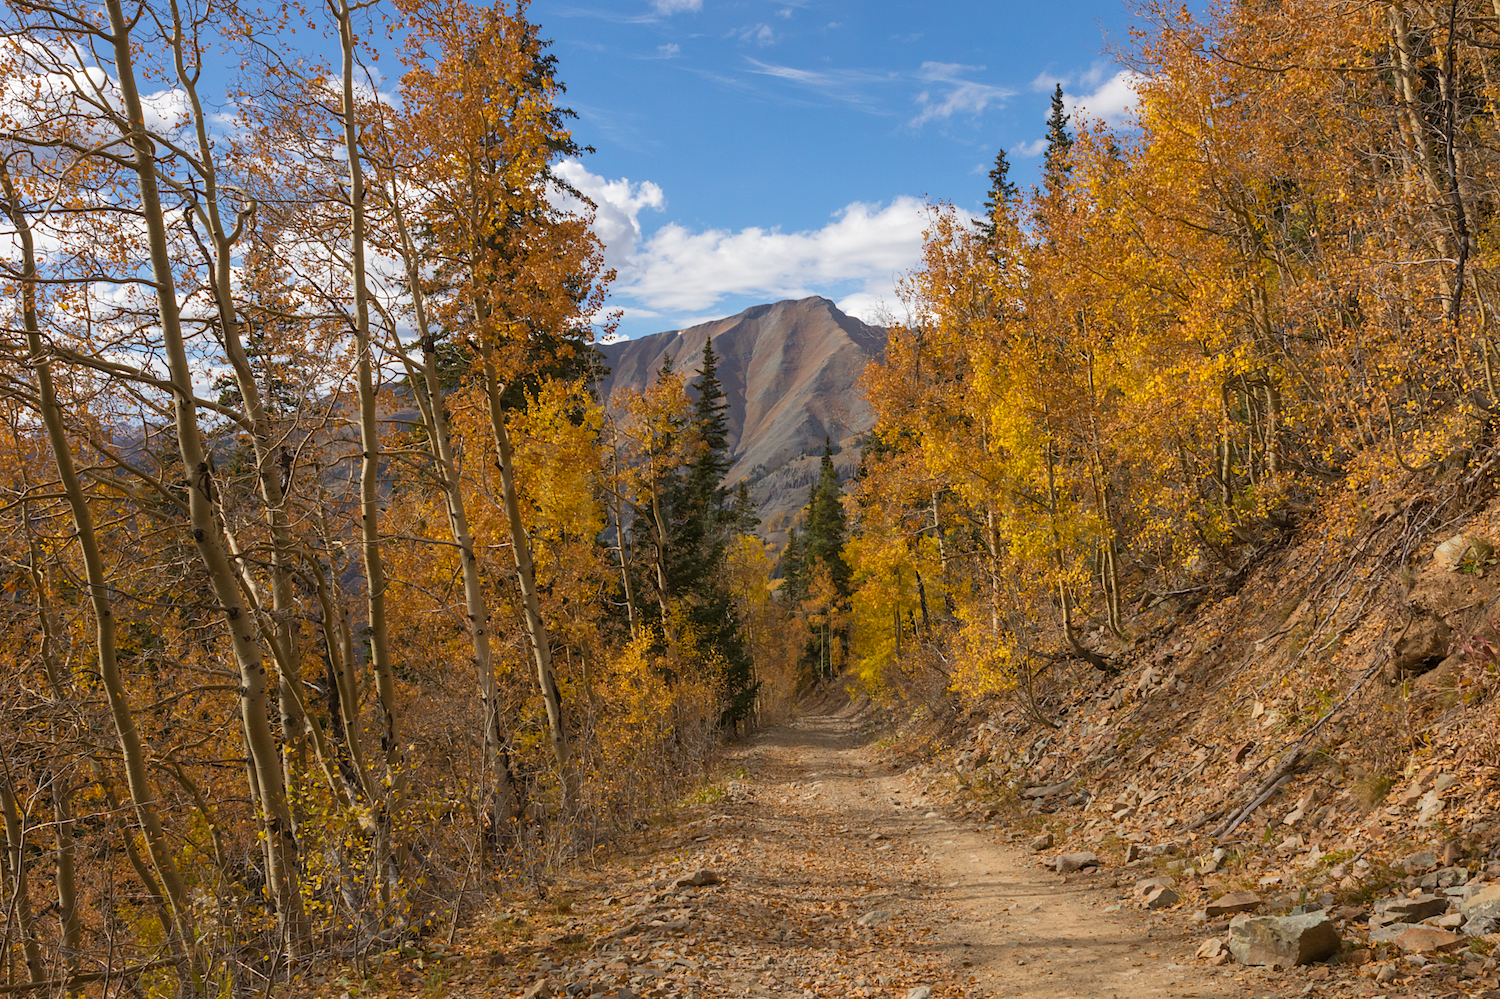 Road to Little Giant Basin, Image # 8913